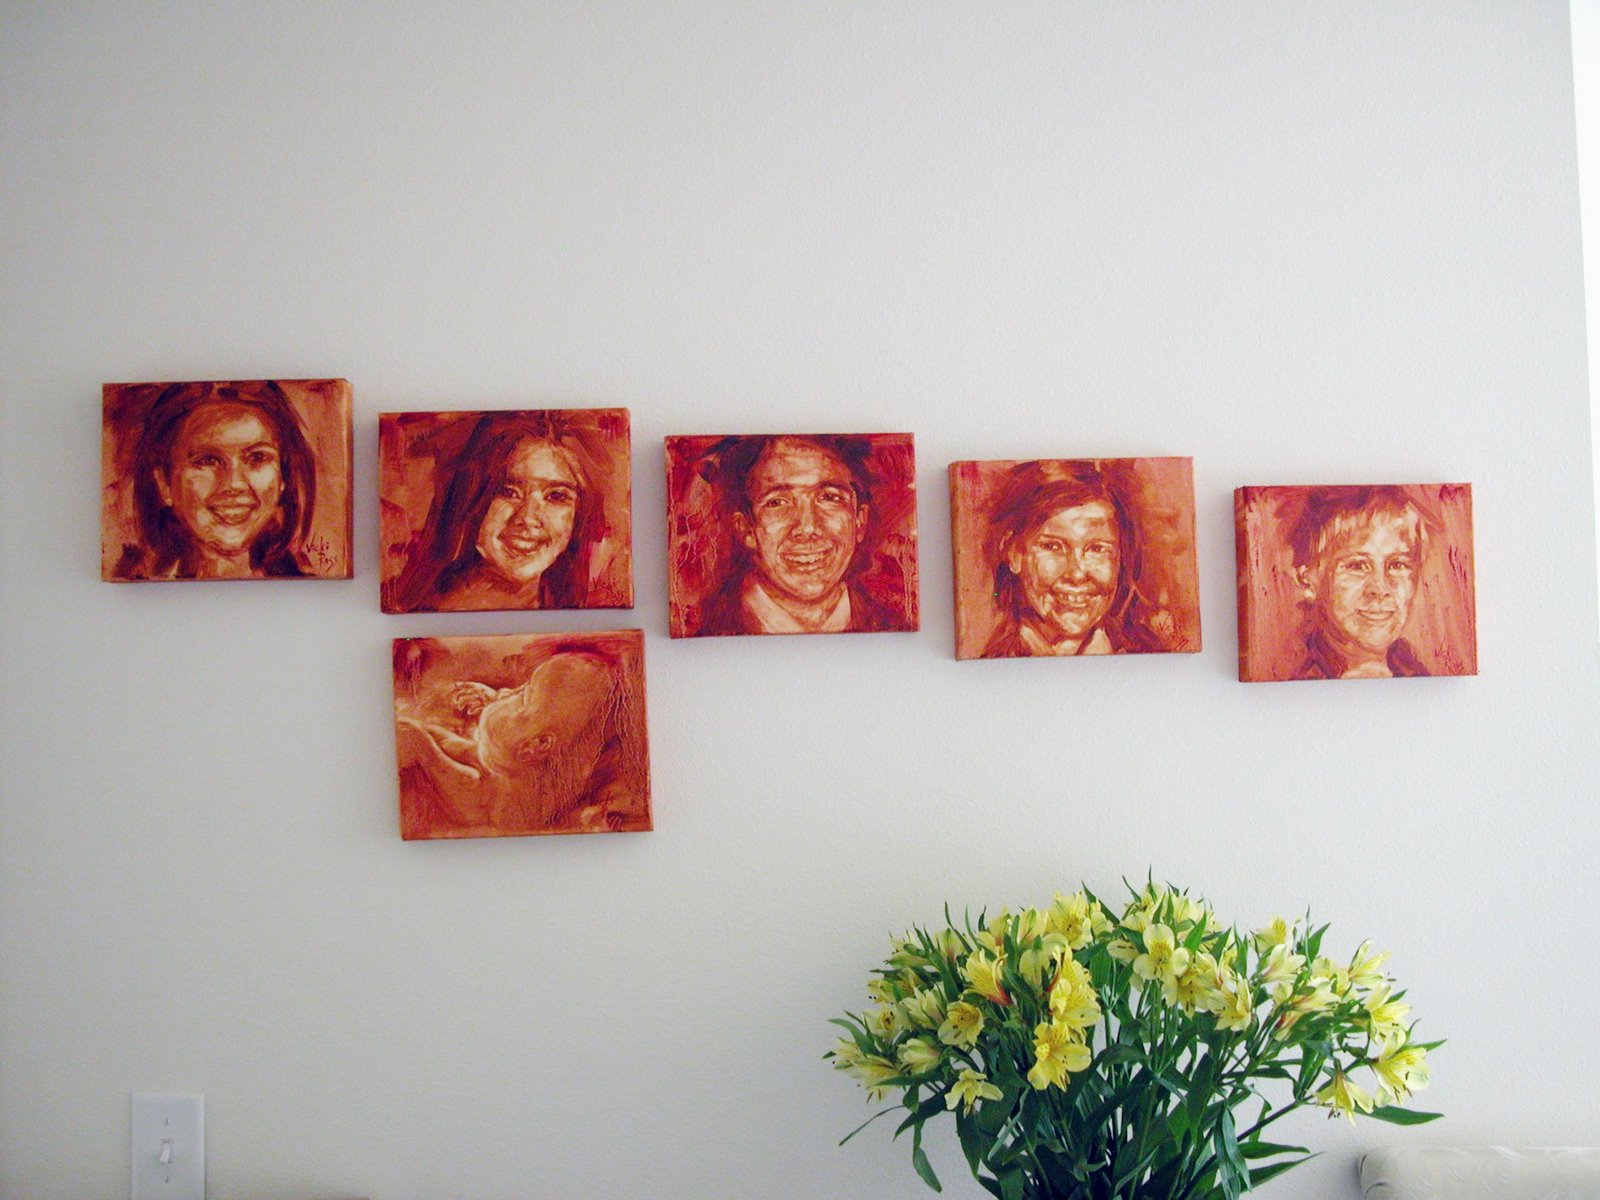 The Grands: Sarah, Betsy, Bill and Great Grands: Rip, Tyler, & in utero Liam